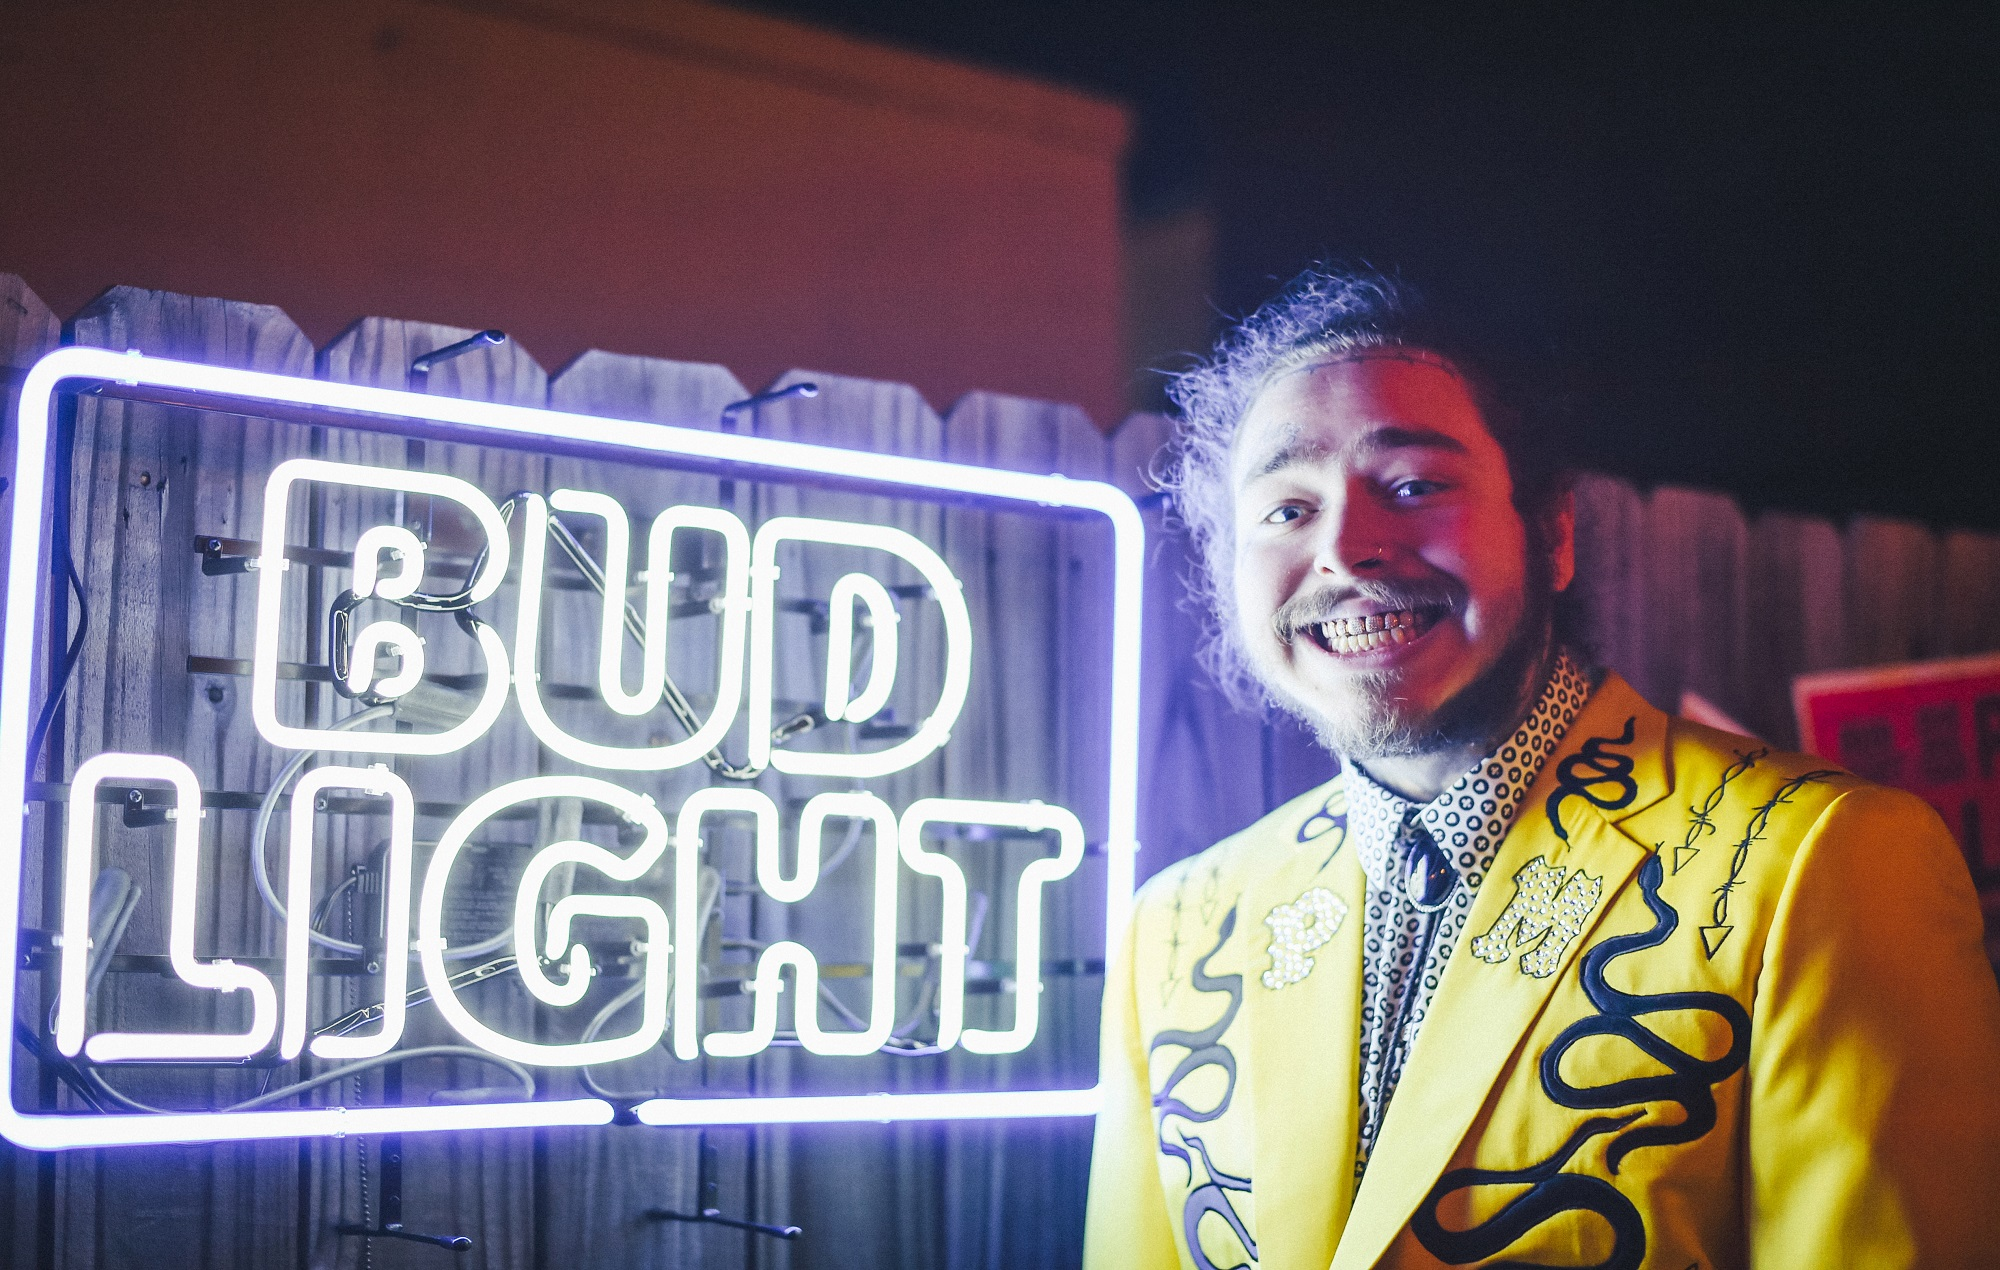 Bud For Me: Post Malone launches merch range with Bud Light